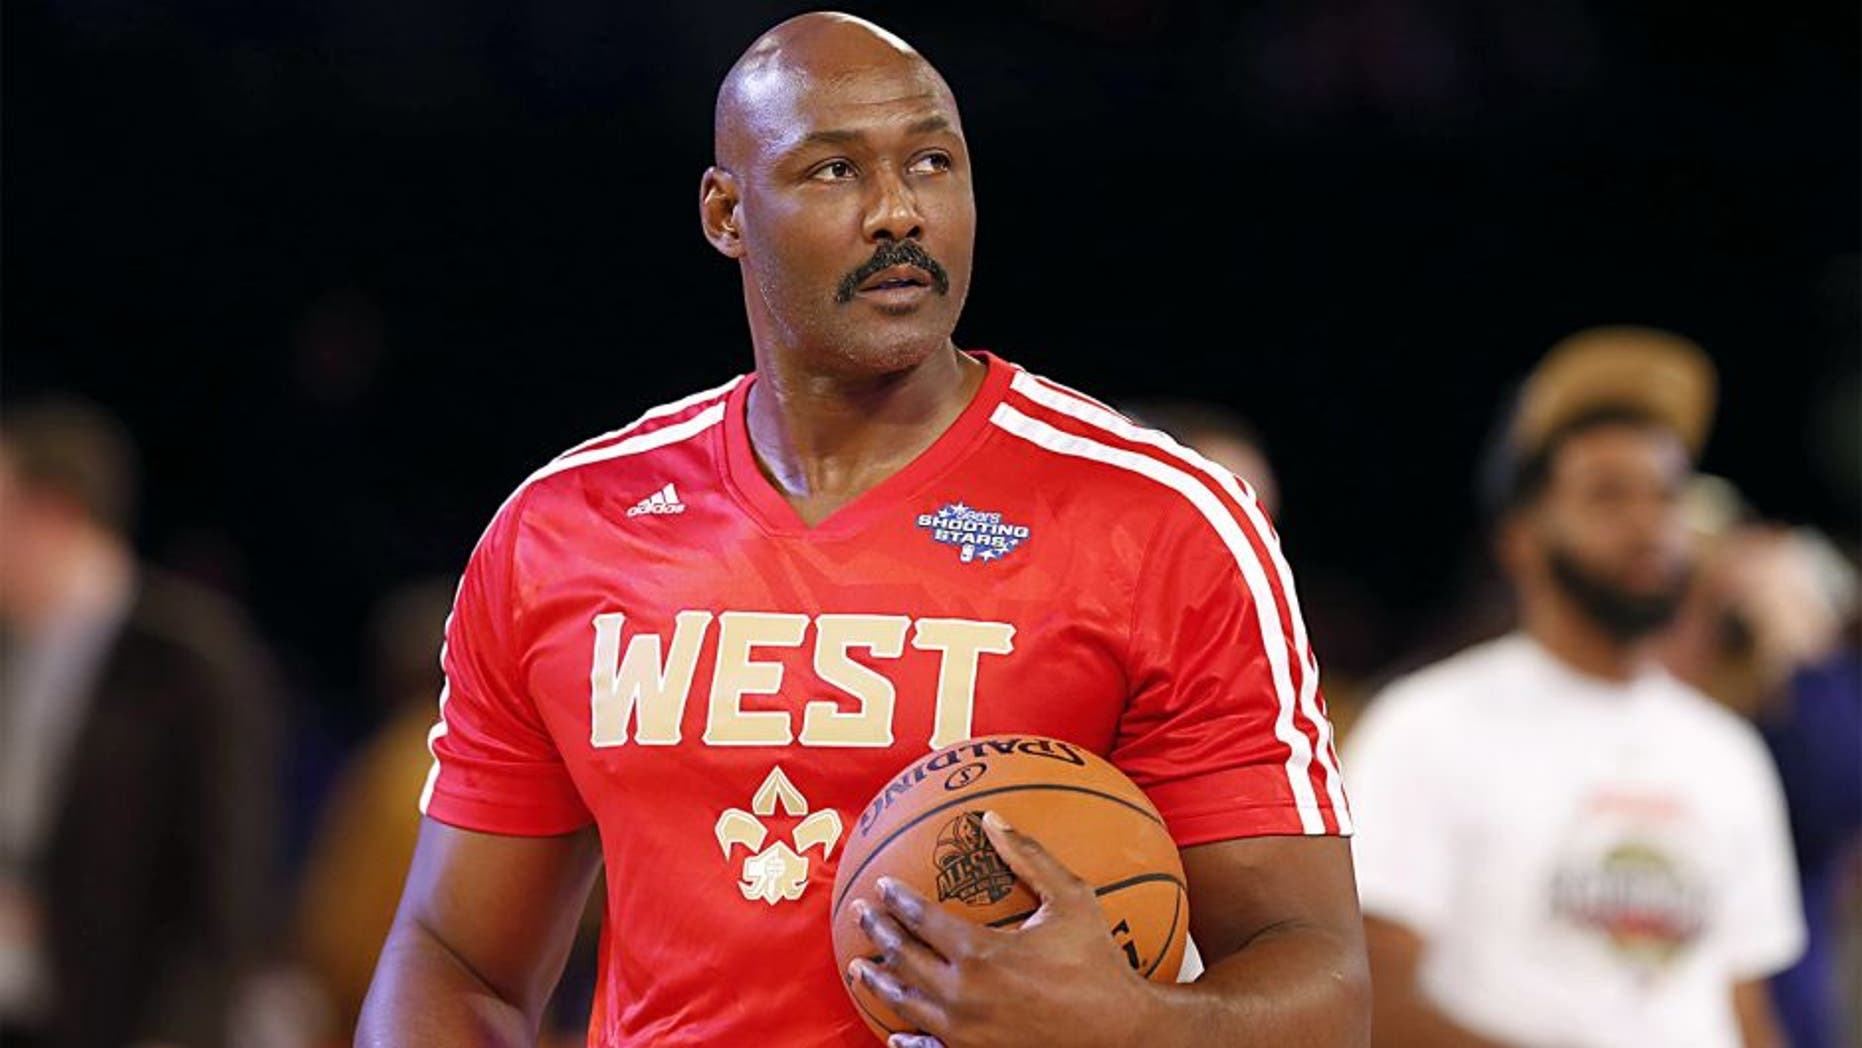 Feb 15, 2014; New Orleans, LA, USA; NBA former player Karl Malone before the 2014 NBA All Star Shooting Stars competition at Smoothie King Center. Mandatory Credit: Derick E. Hingle-USA TODAY Sports